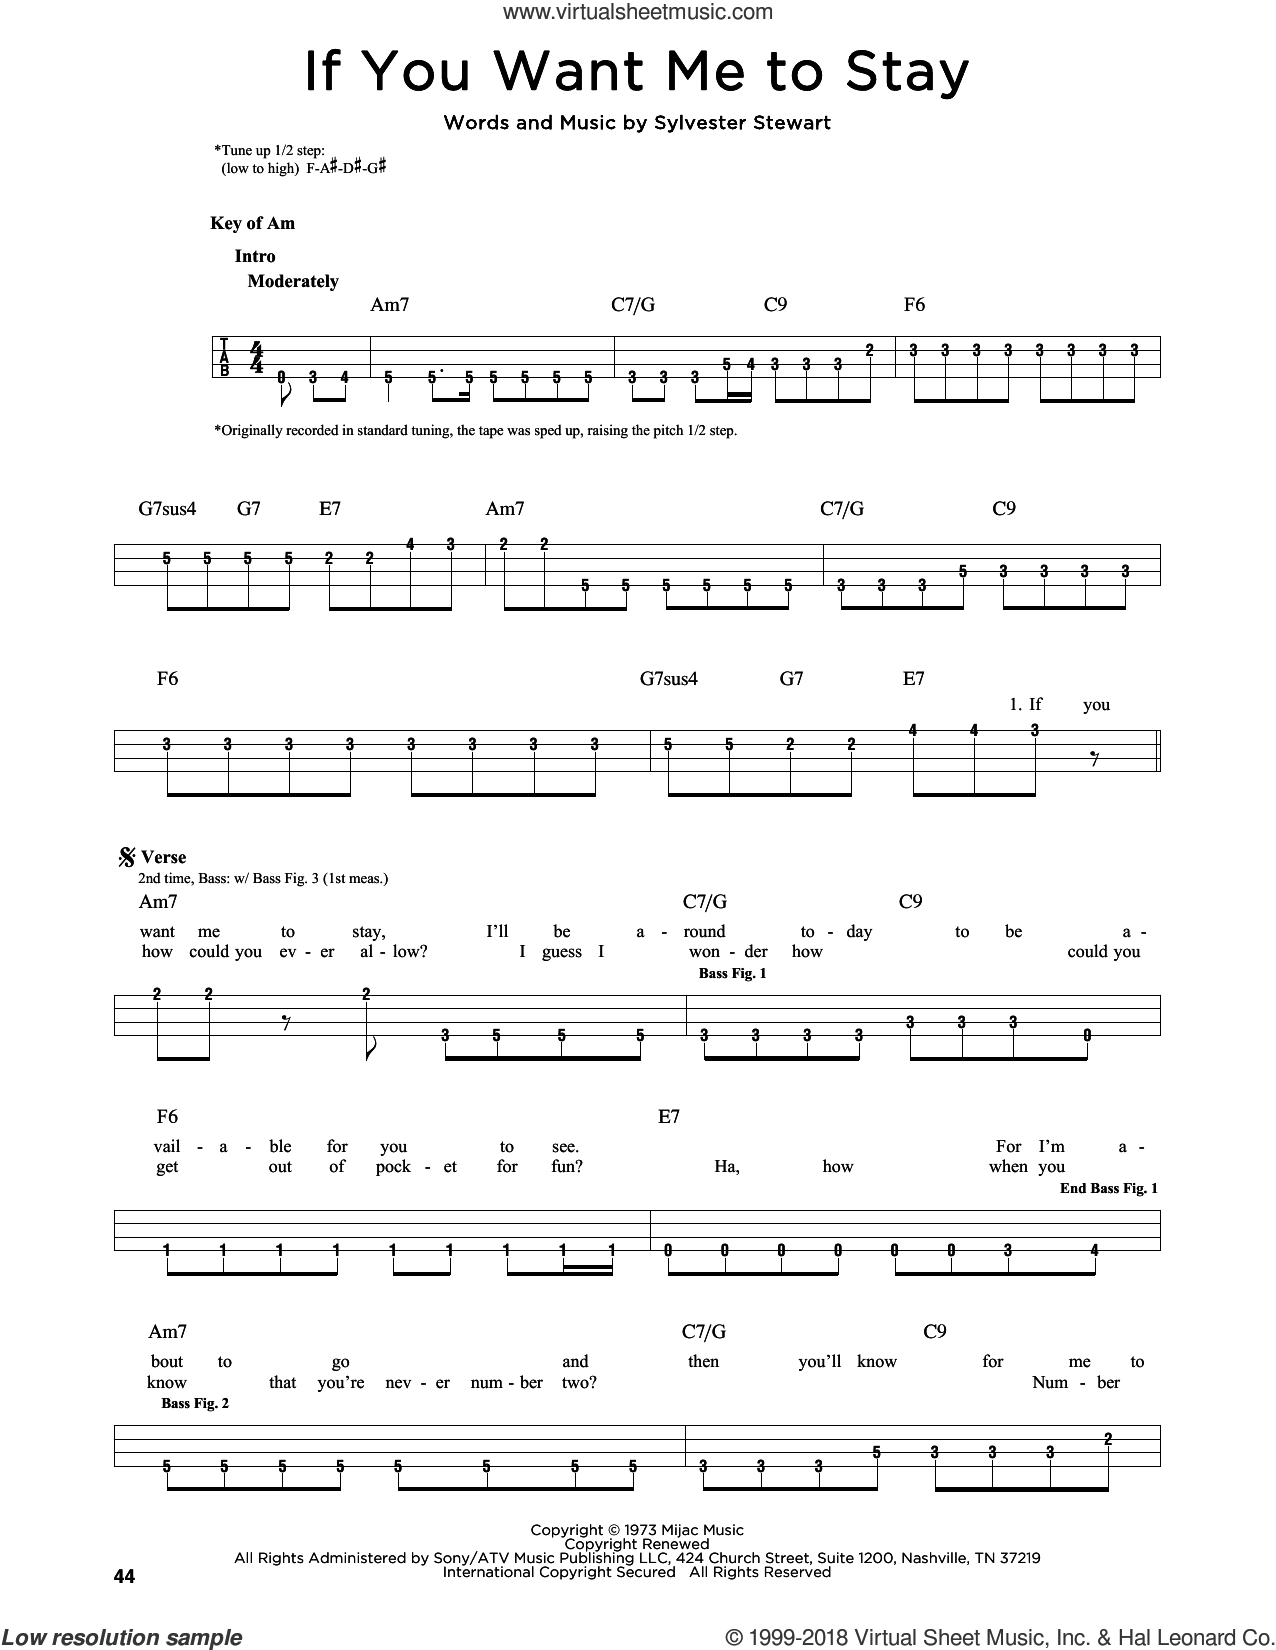 If You Want Me To Stay sheet music for bass solo by Sly & The Family Stone, Red Hot Chili Peppers and Sylvester Stewart, intermediate skill level